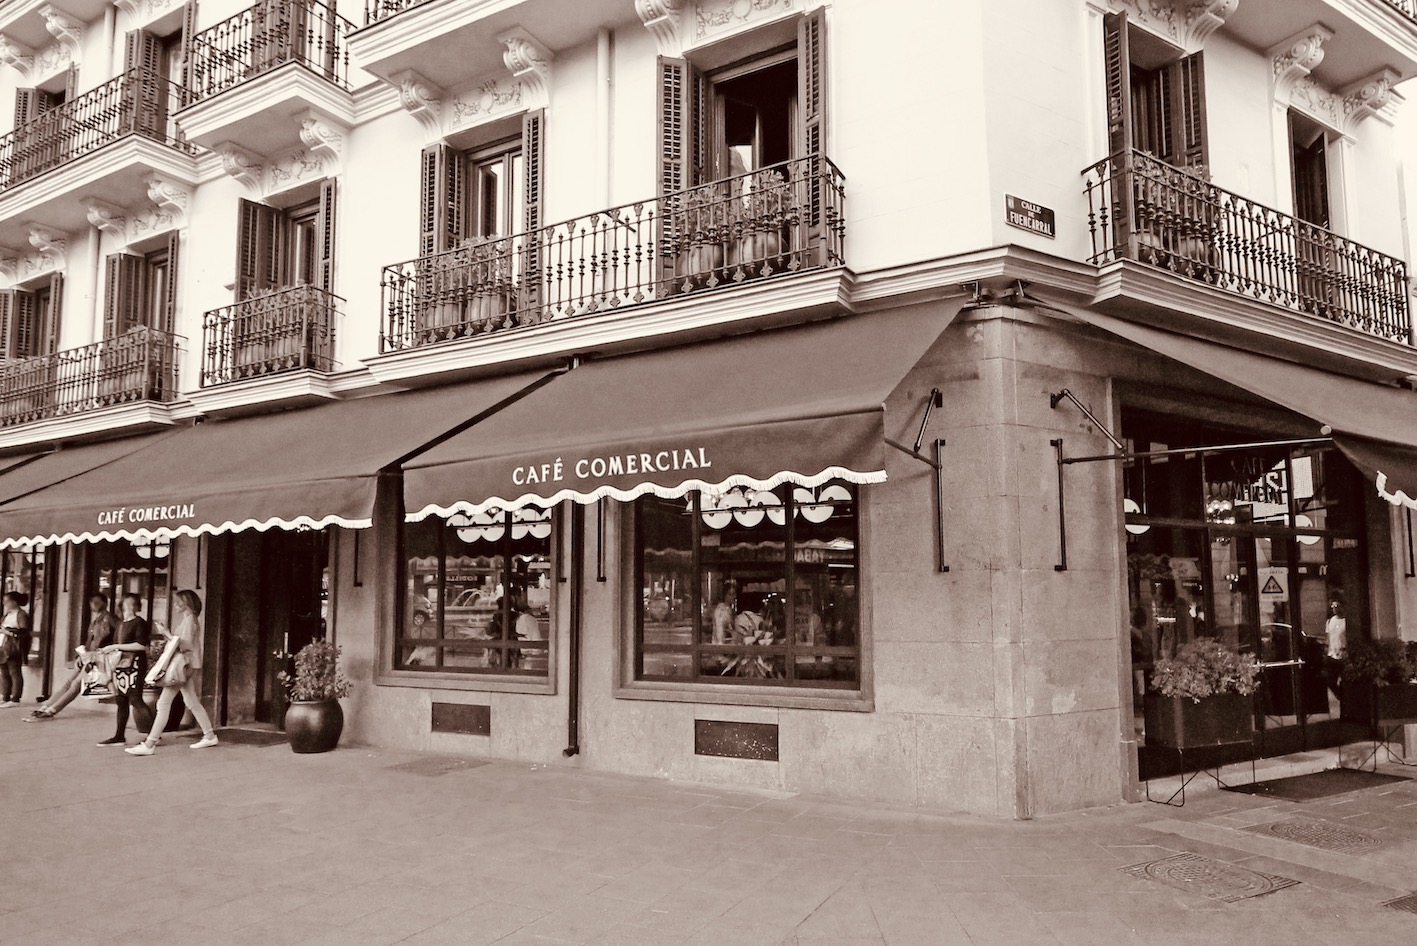 Cafe Comercial Madrid.